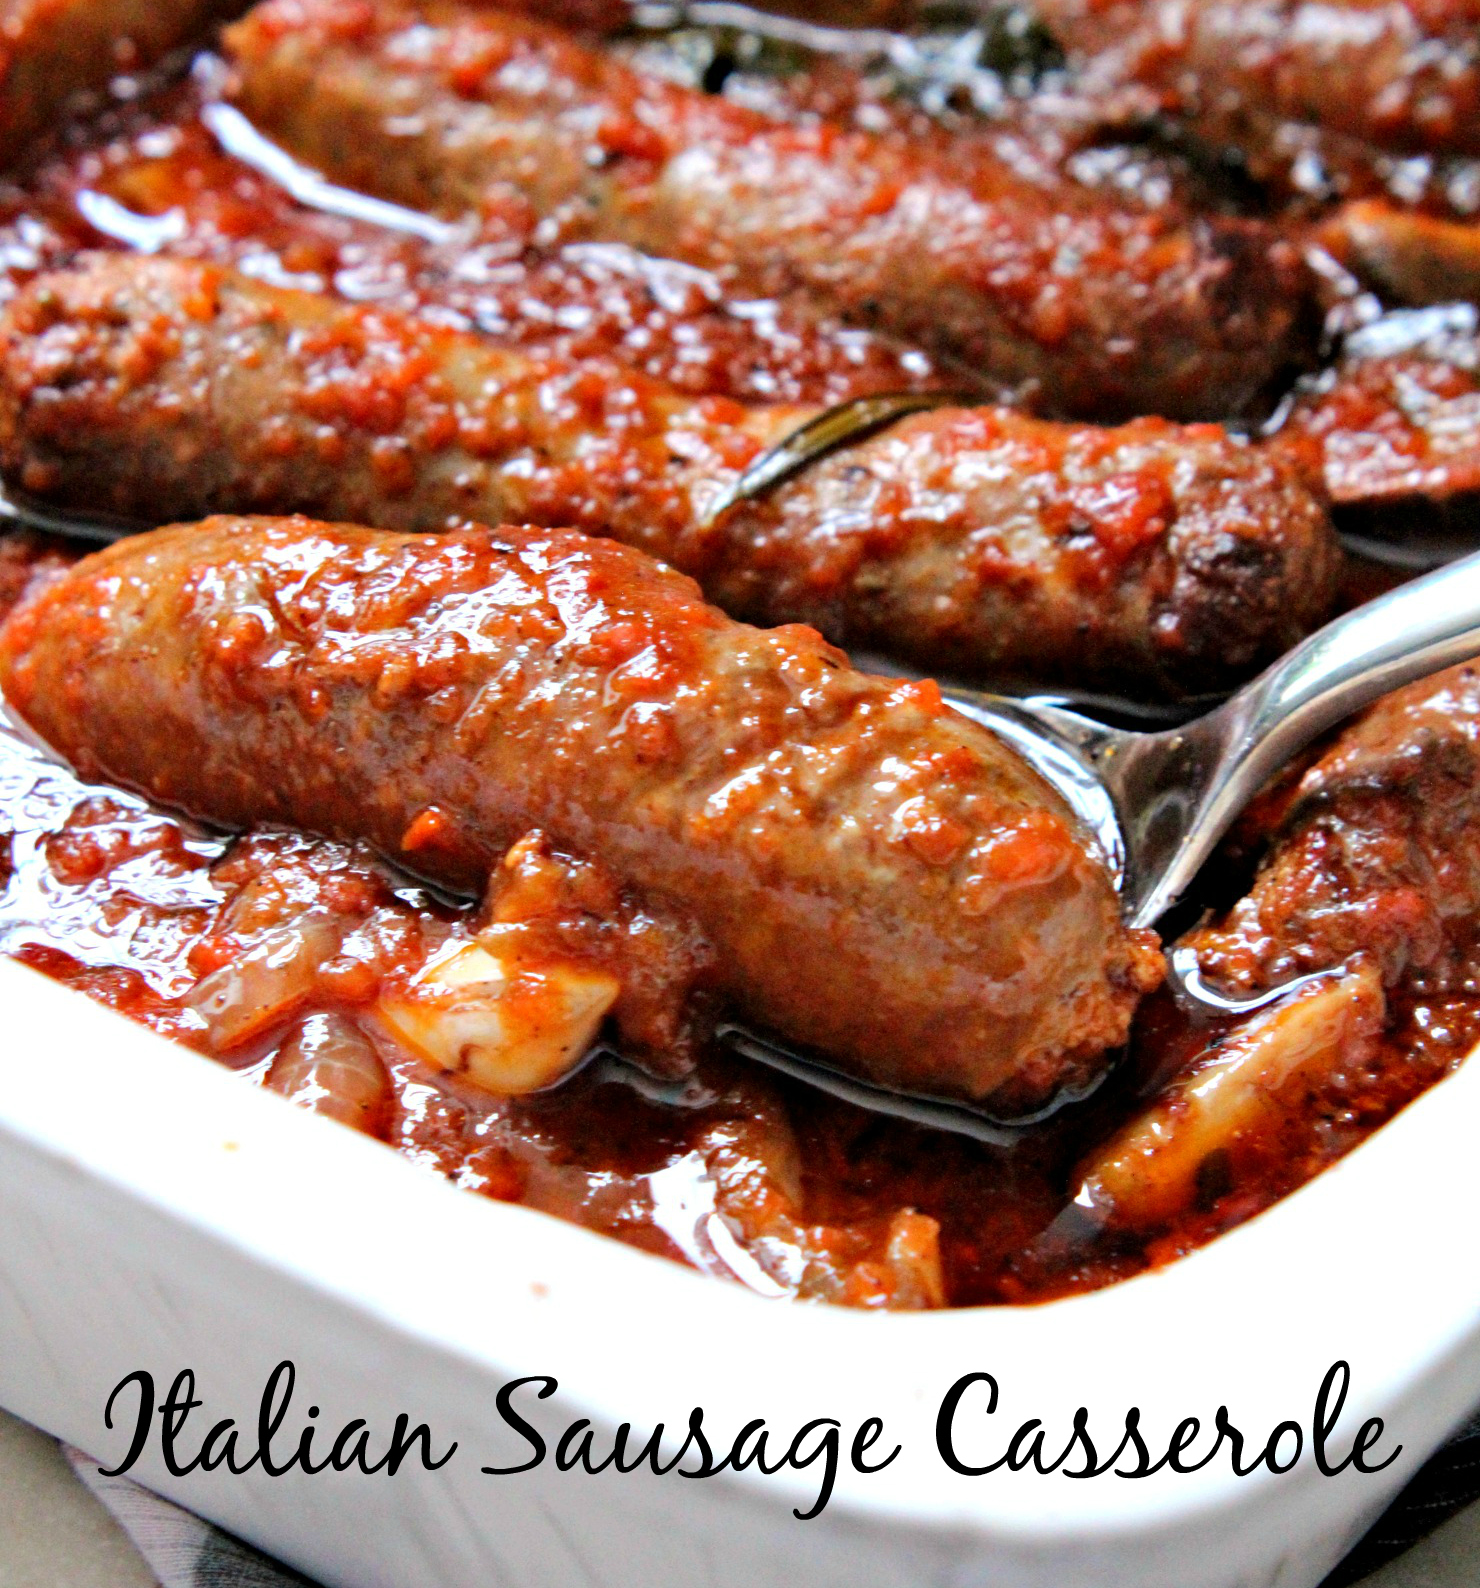 This Italian Sausage Casserole is delicious and loaded with flavors from meat, herbs and vegetables! A healthy and yummy option for those in a gluten-free and low-carb diet, too! Perfect winter comfort food.